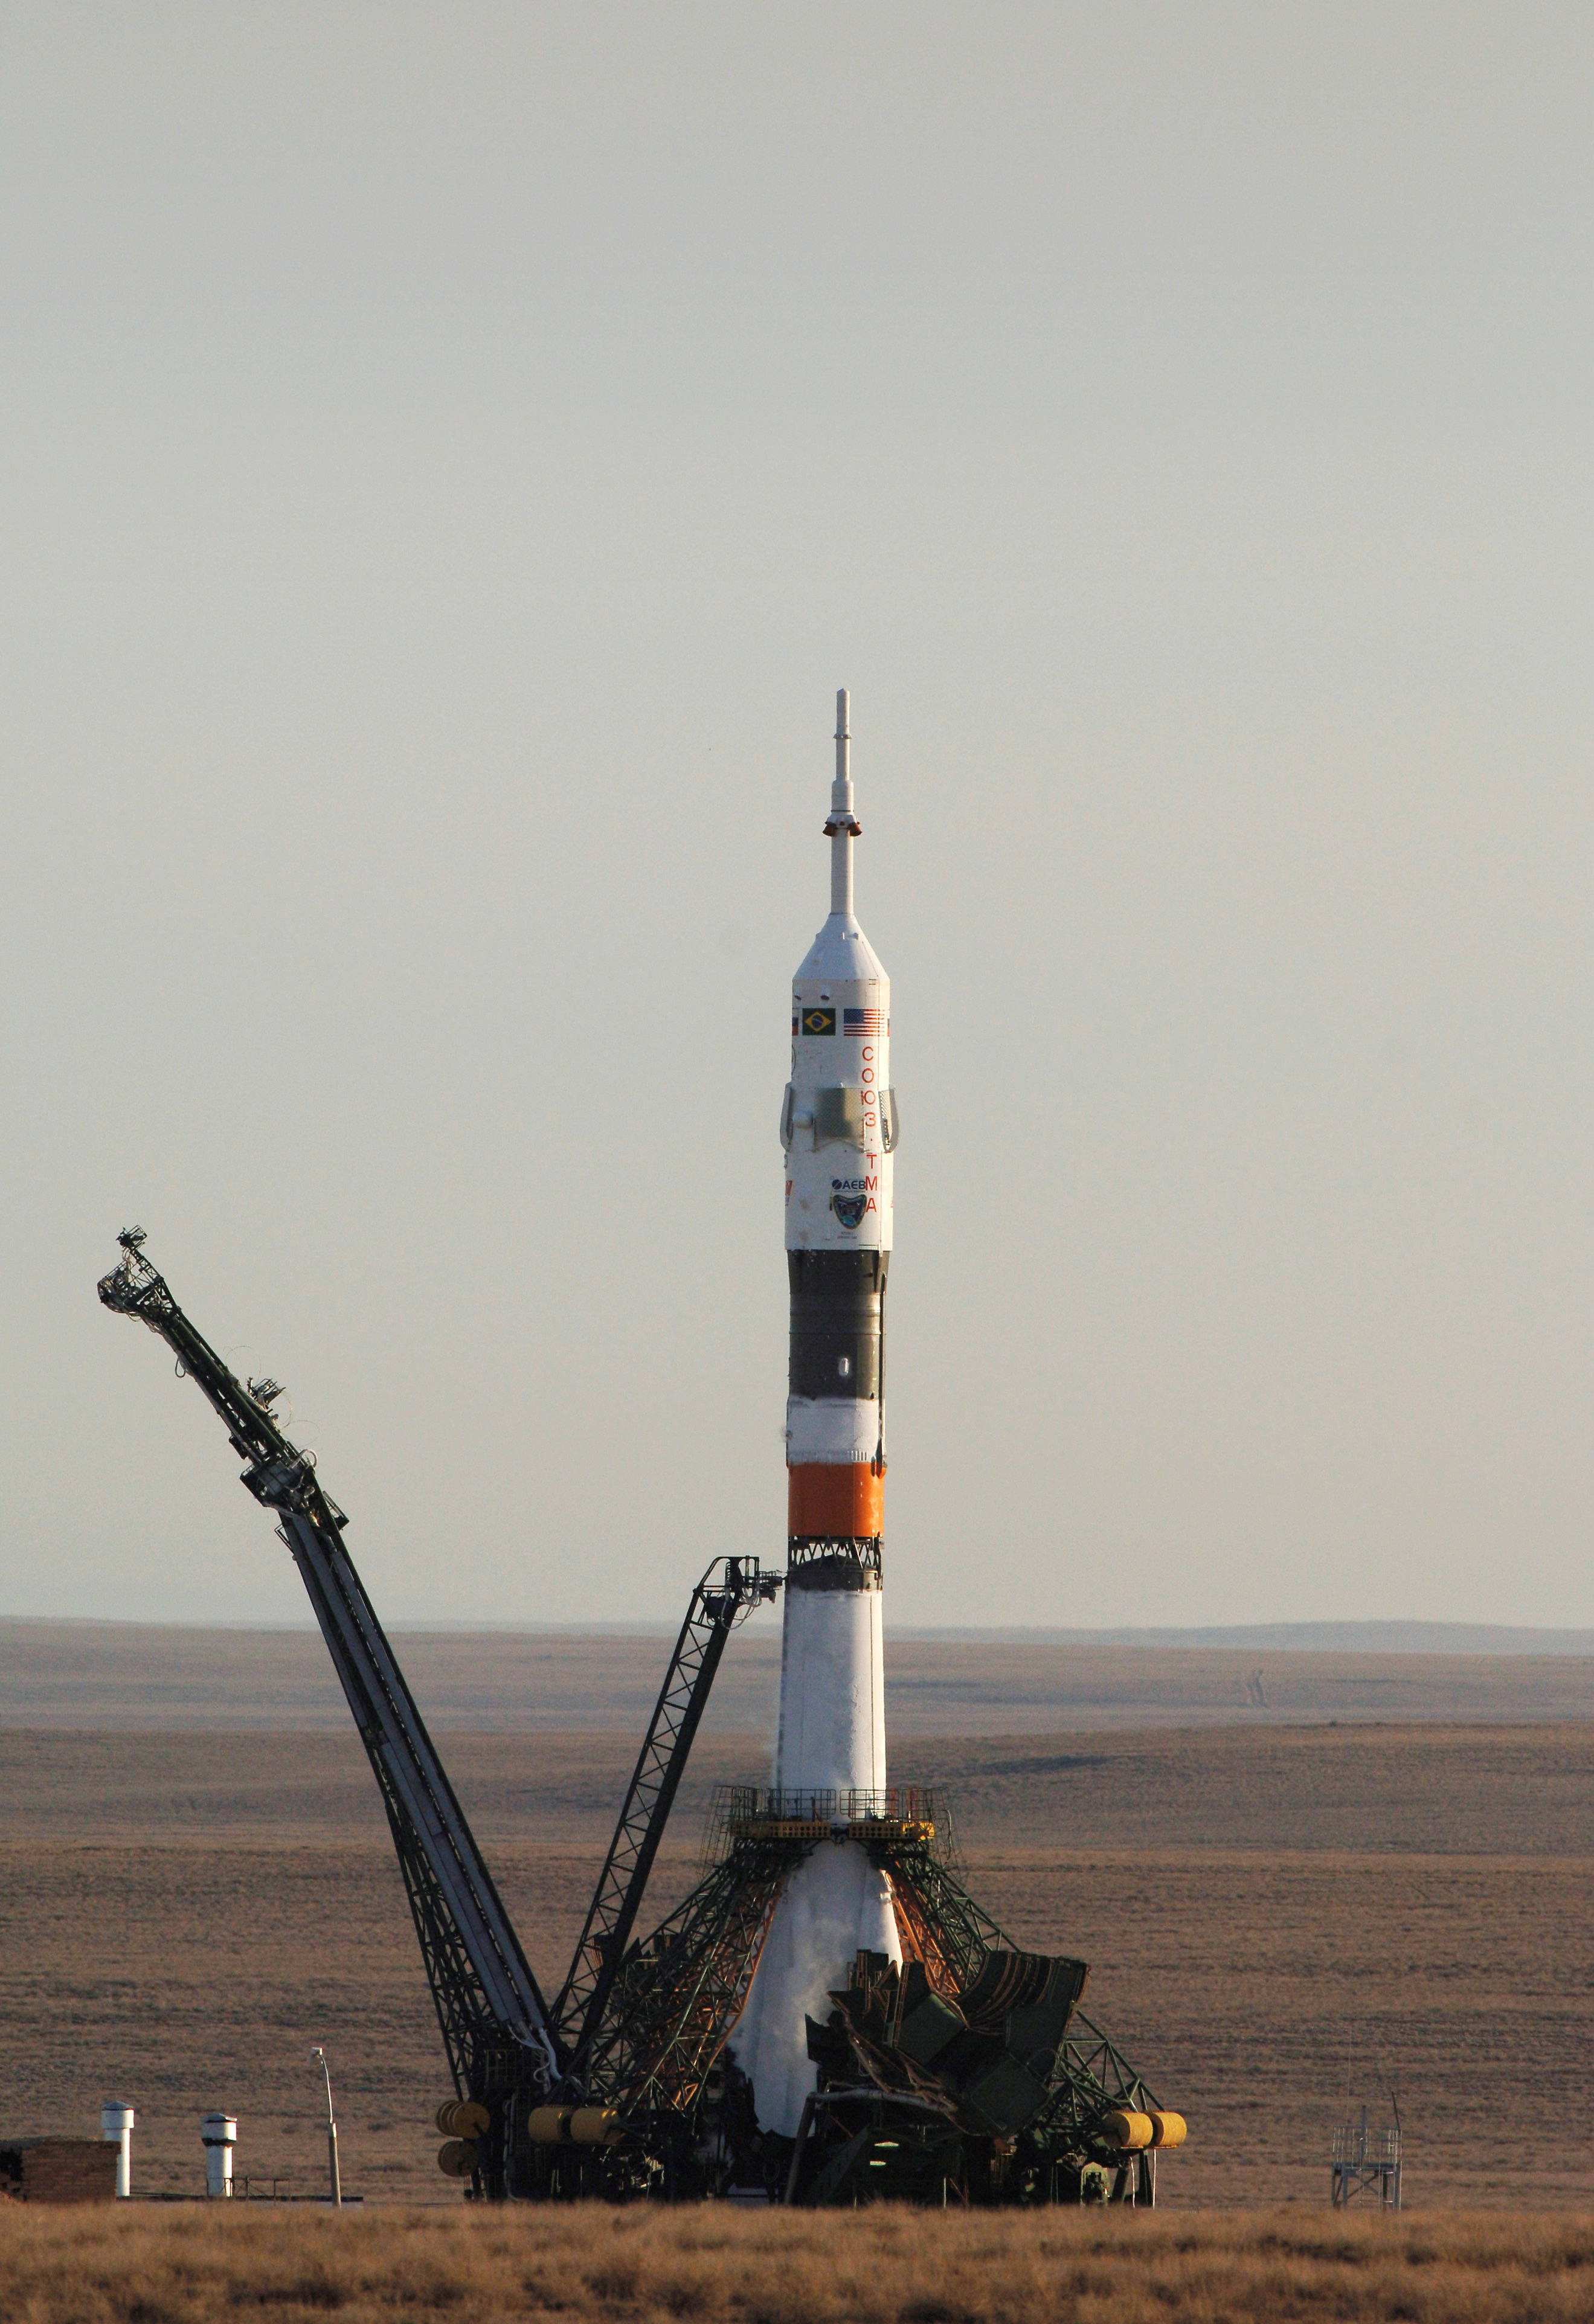 Stock Photograph of the Soyuz Rocket at the Baikonur Cosmodrome.